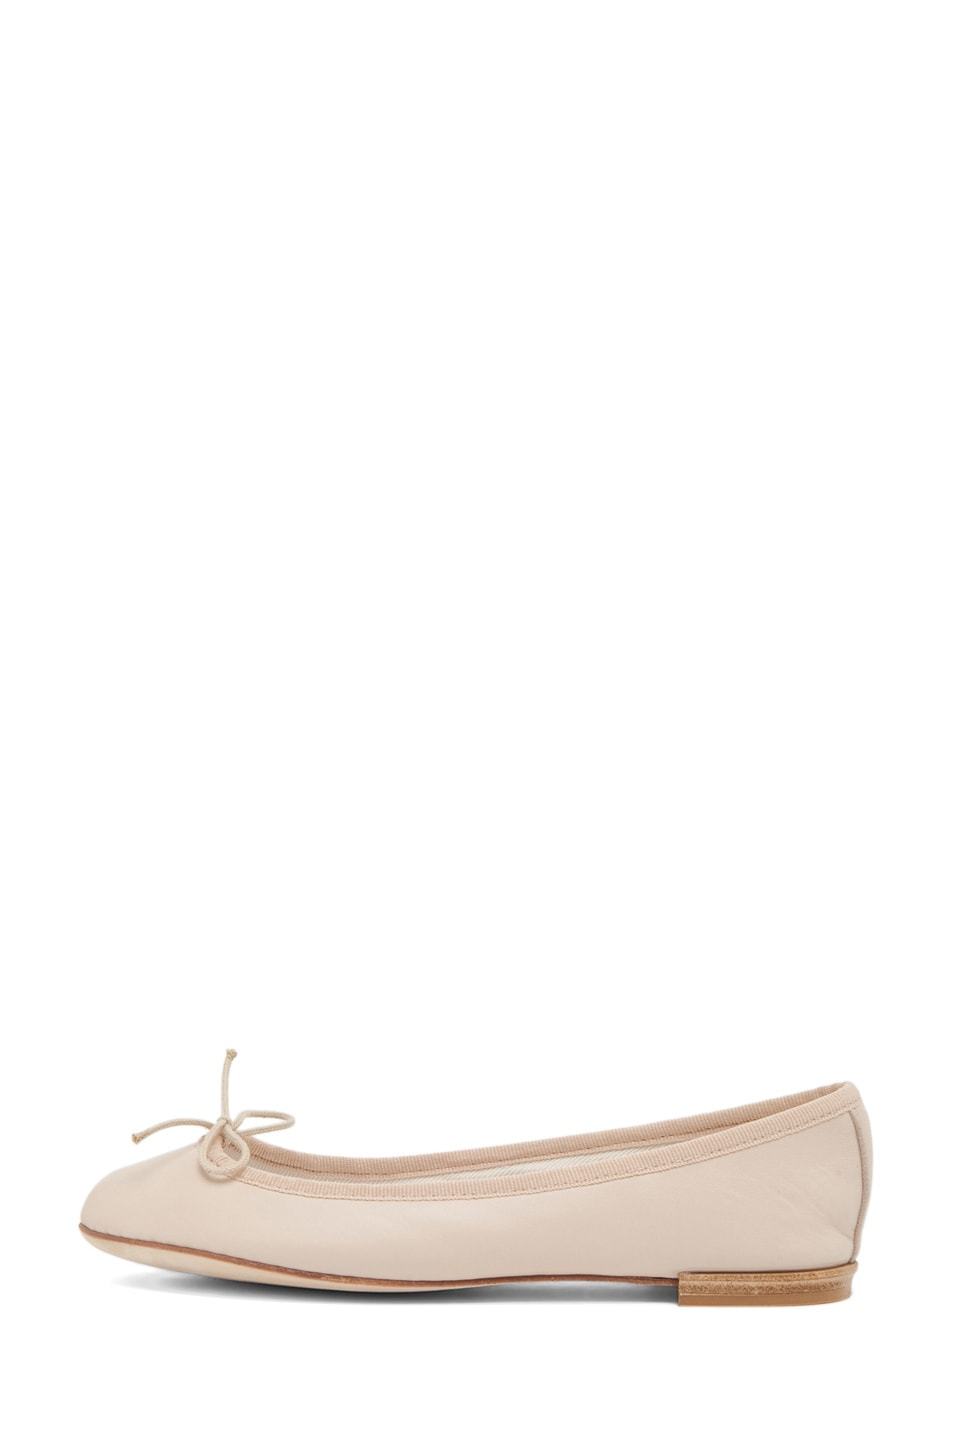 Image 1 of Repetto Lambskin Flat in Nude